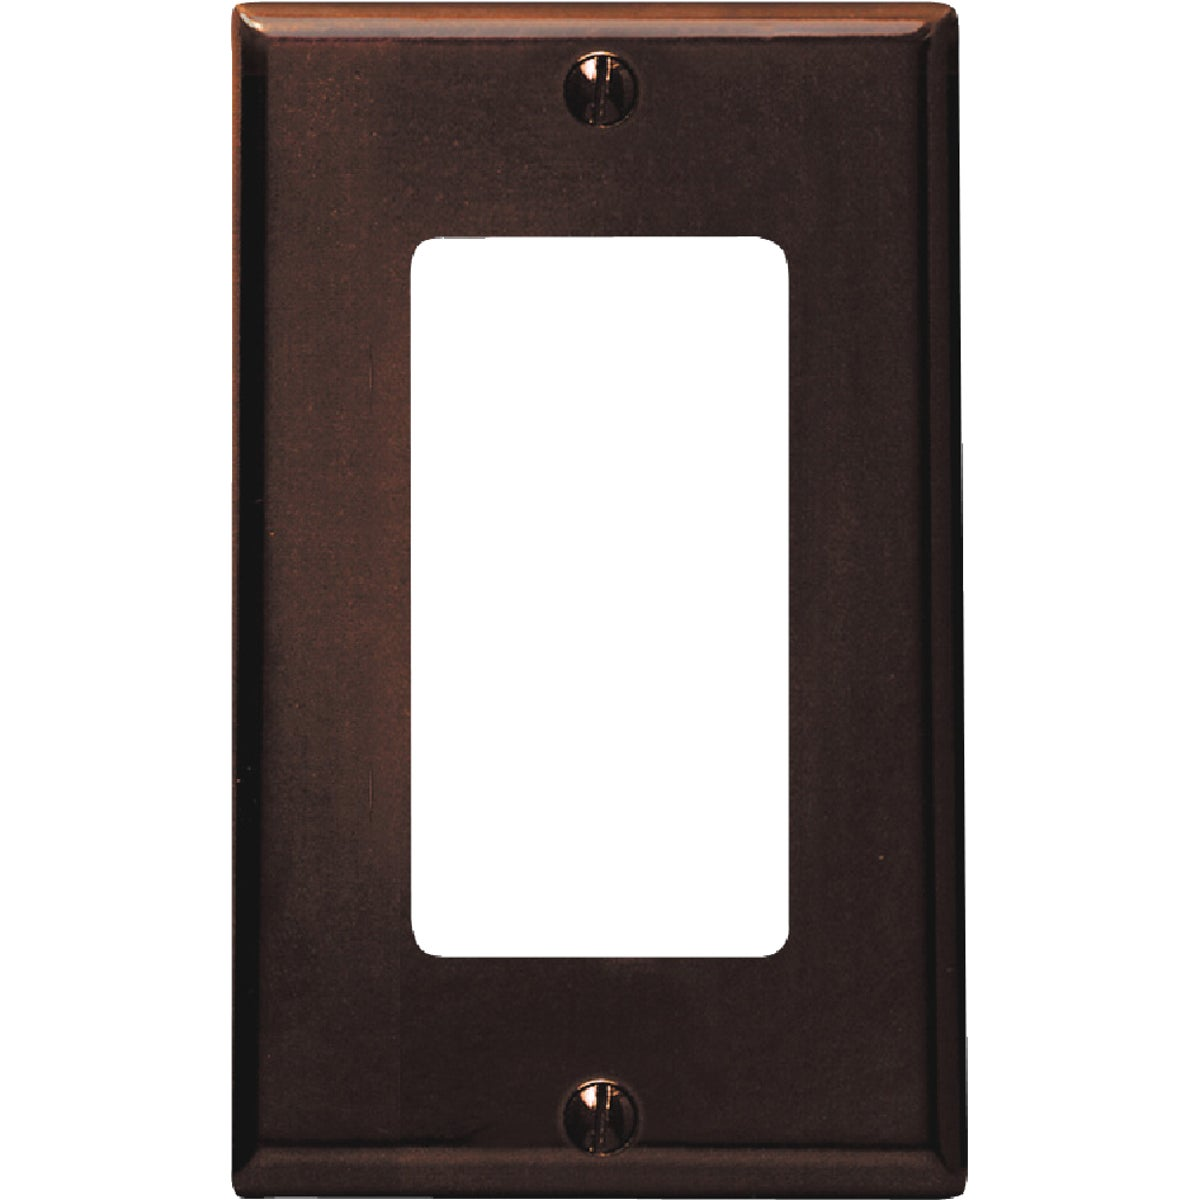 BRN WALL PLATE - 002-80401-00 by Leviton Mfg Co